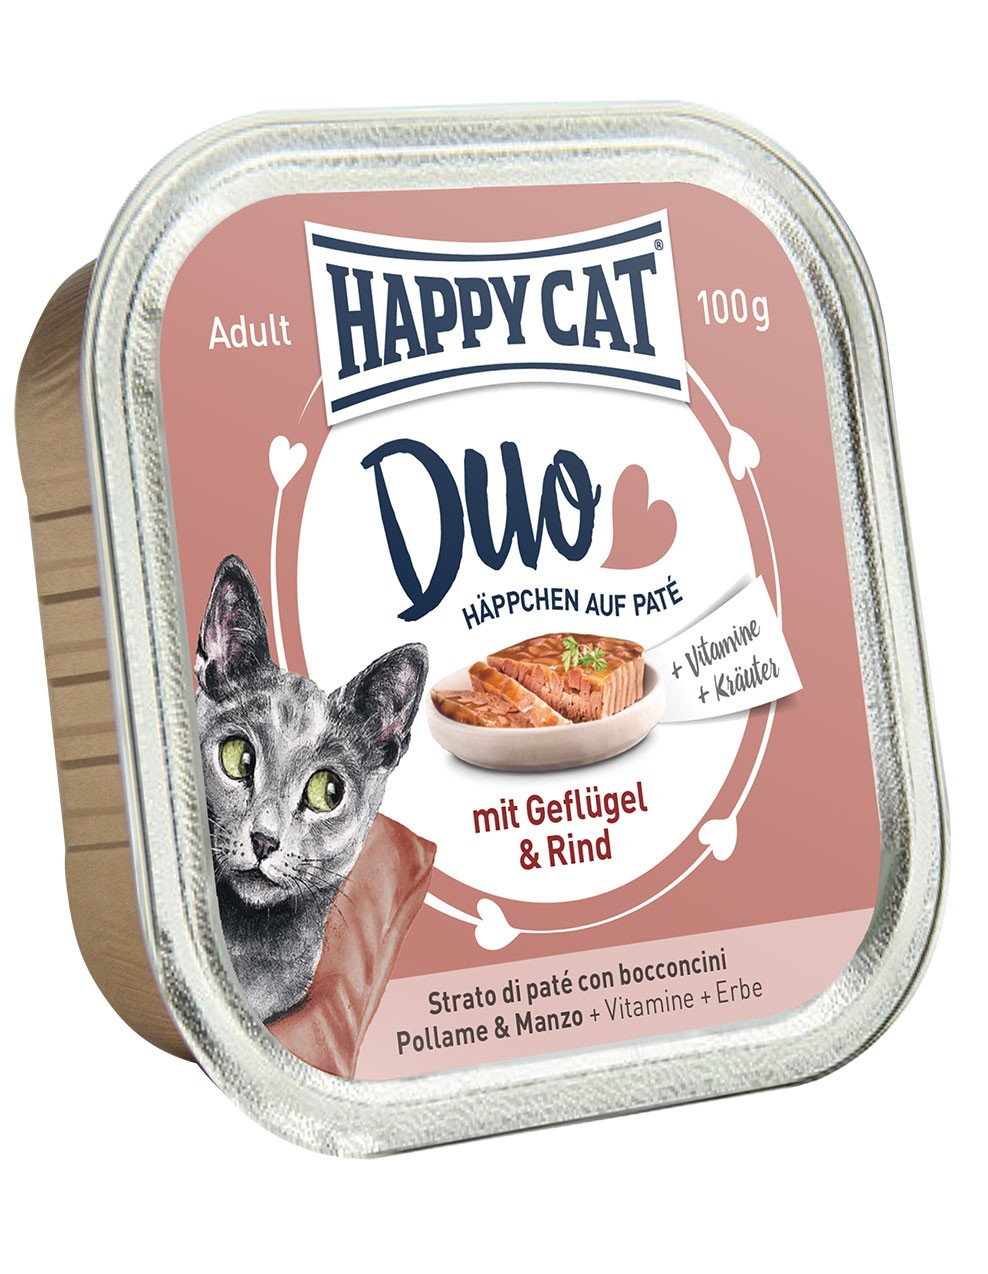 Duo Menu - Geflügel & Rind (12x100g) - Happycat